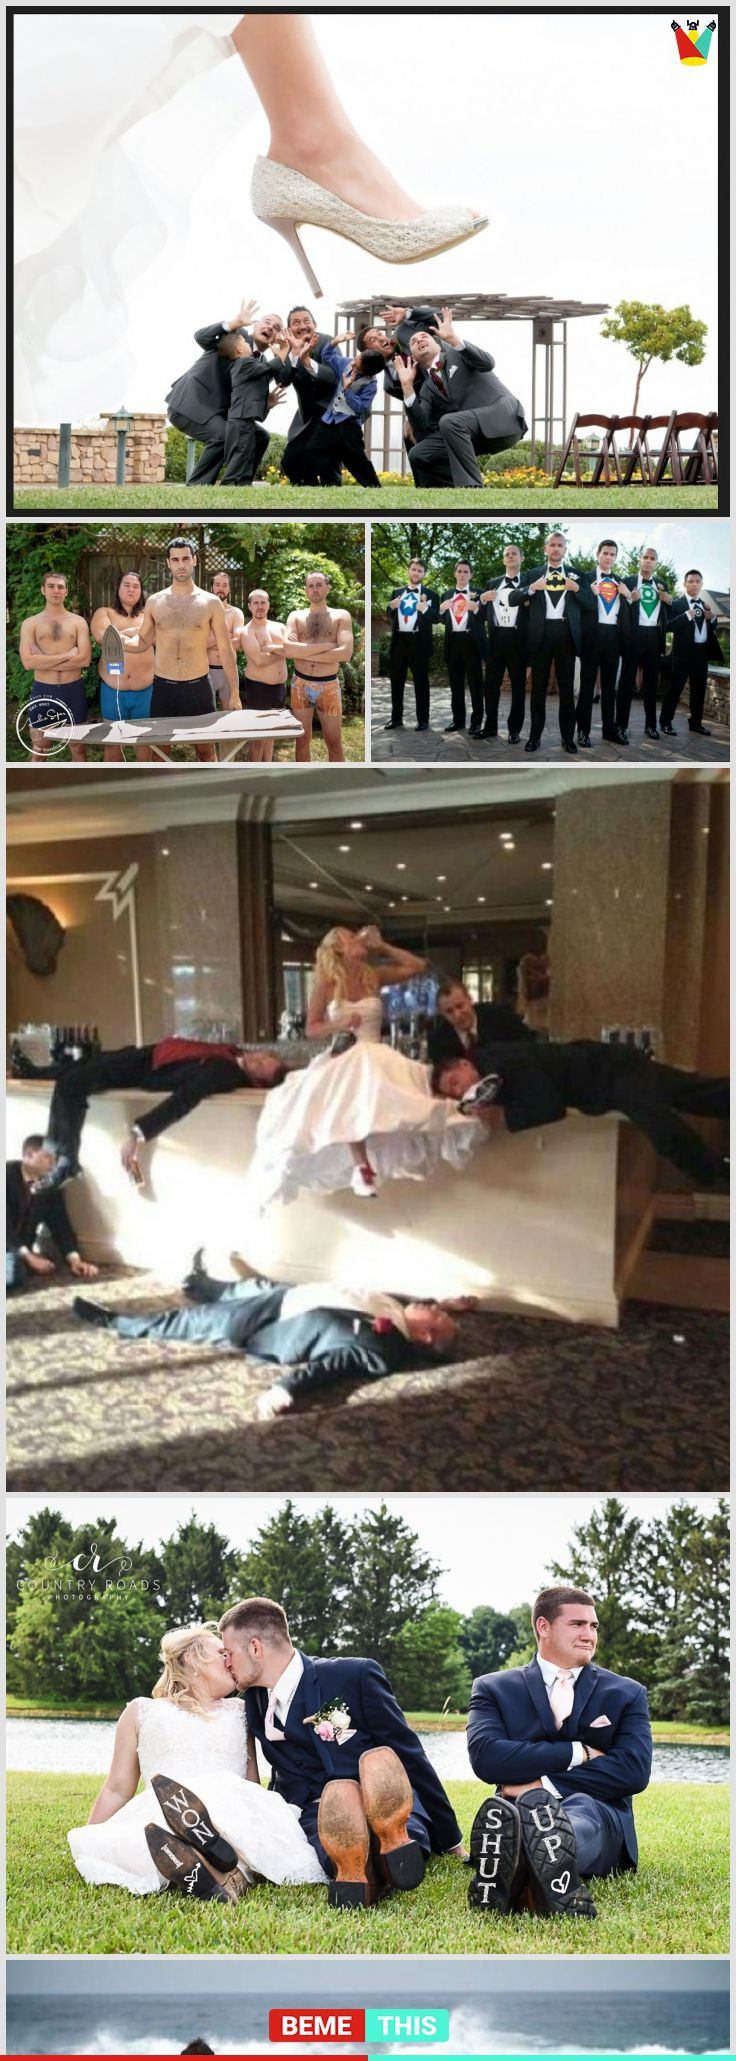 Of The Funniest Photos Of Grooms And Their Best Men Groom Bestman Funnypictures Weddings Photography